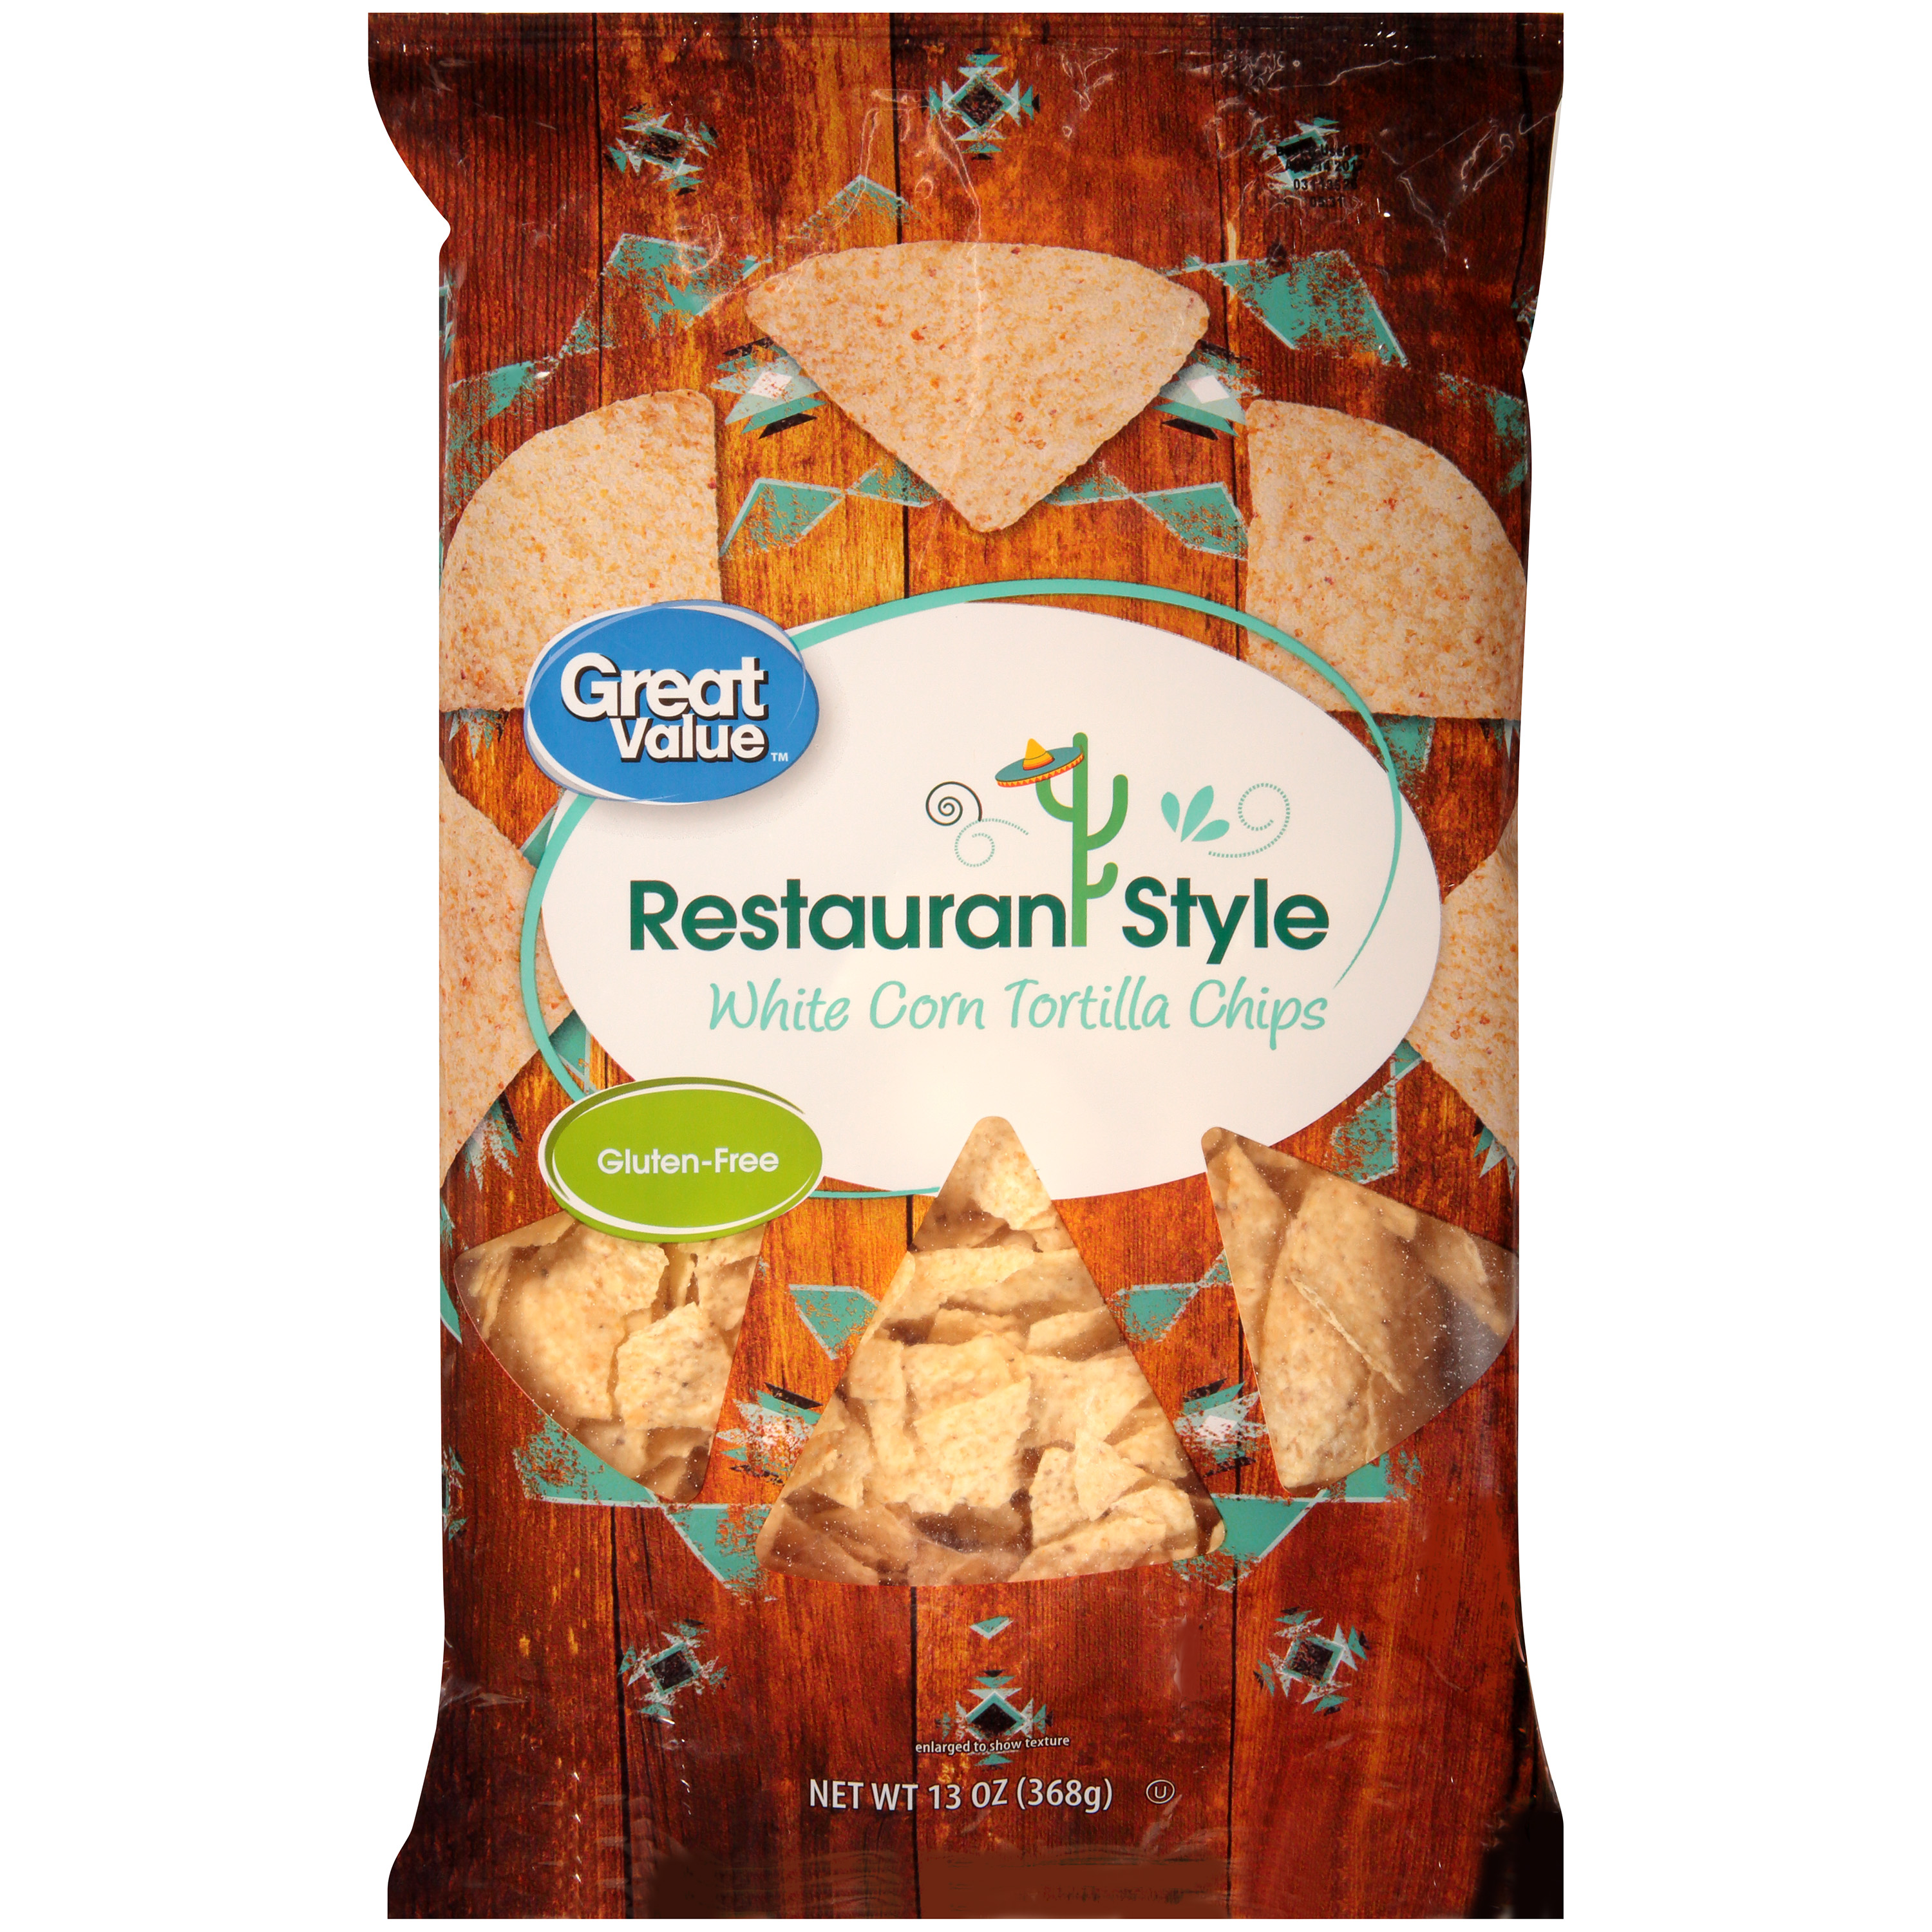 Great Value Restaurant Style White Corn Tortilla Chips 13 Oz